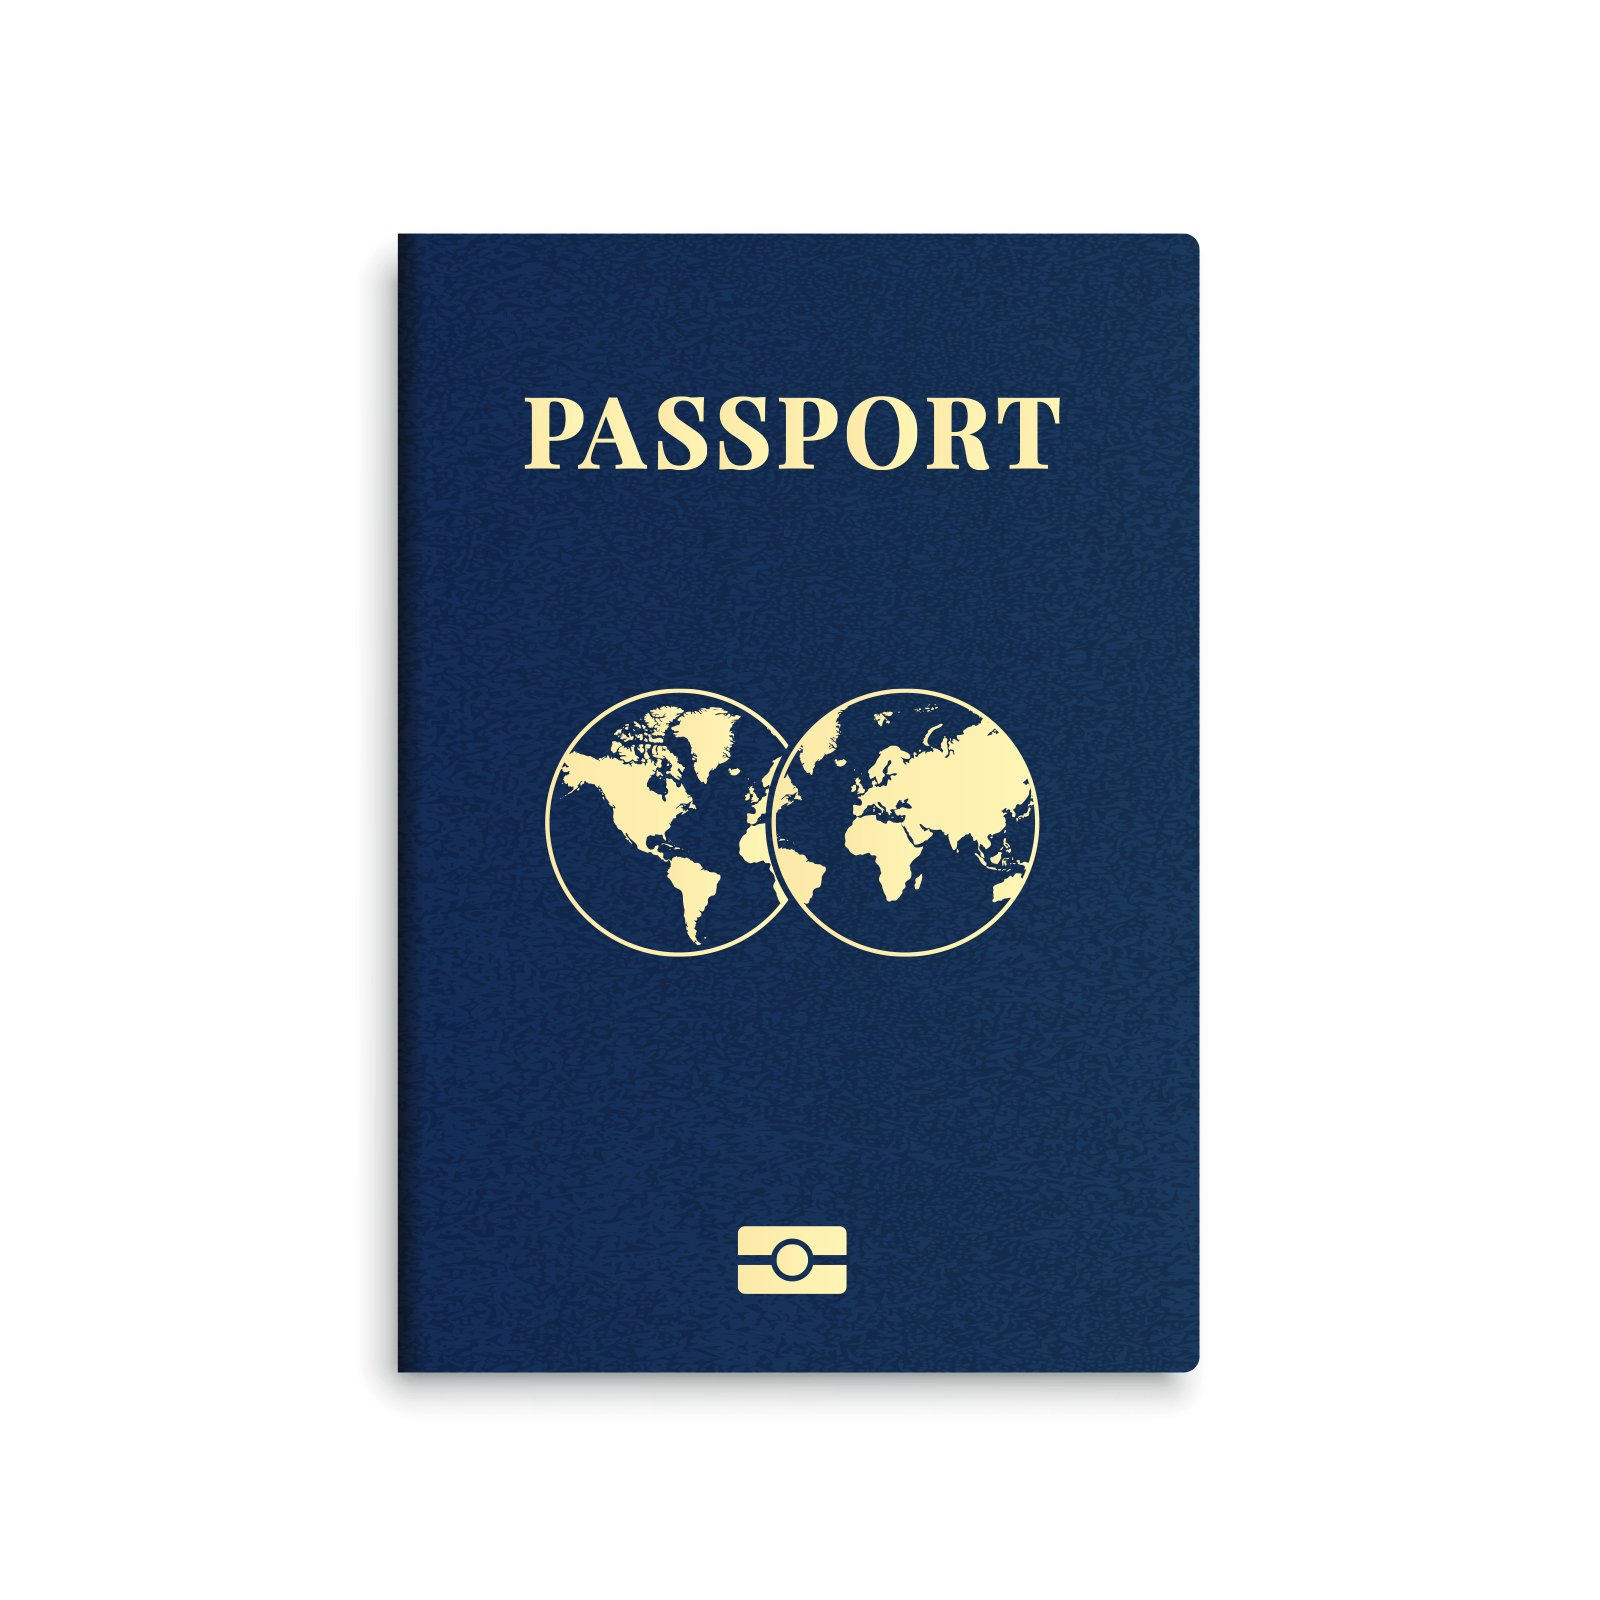 Did You Receive a Notice CP 508C From the IRS Stating That  Your Passport is Being Revoked? Maybe the APA Can Prevent the IRS from Taking Your Passport